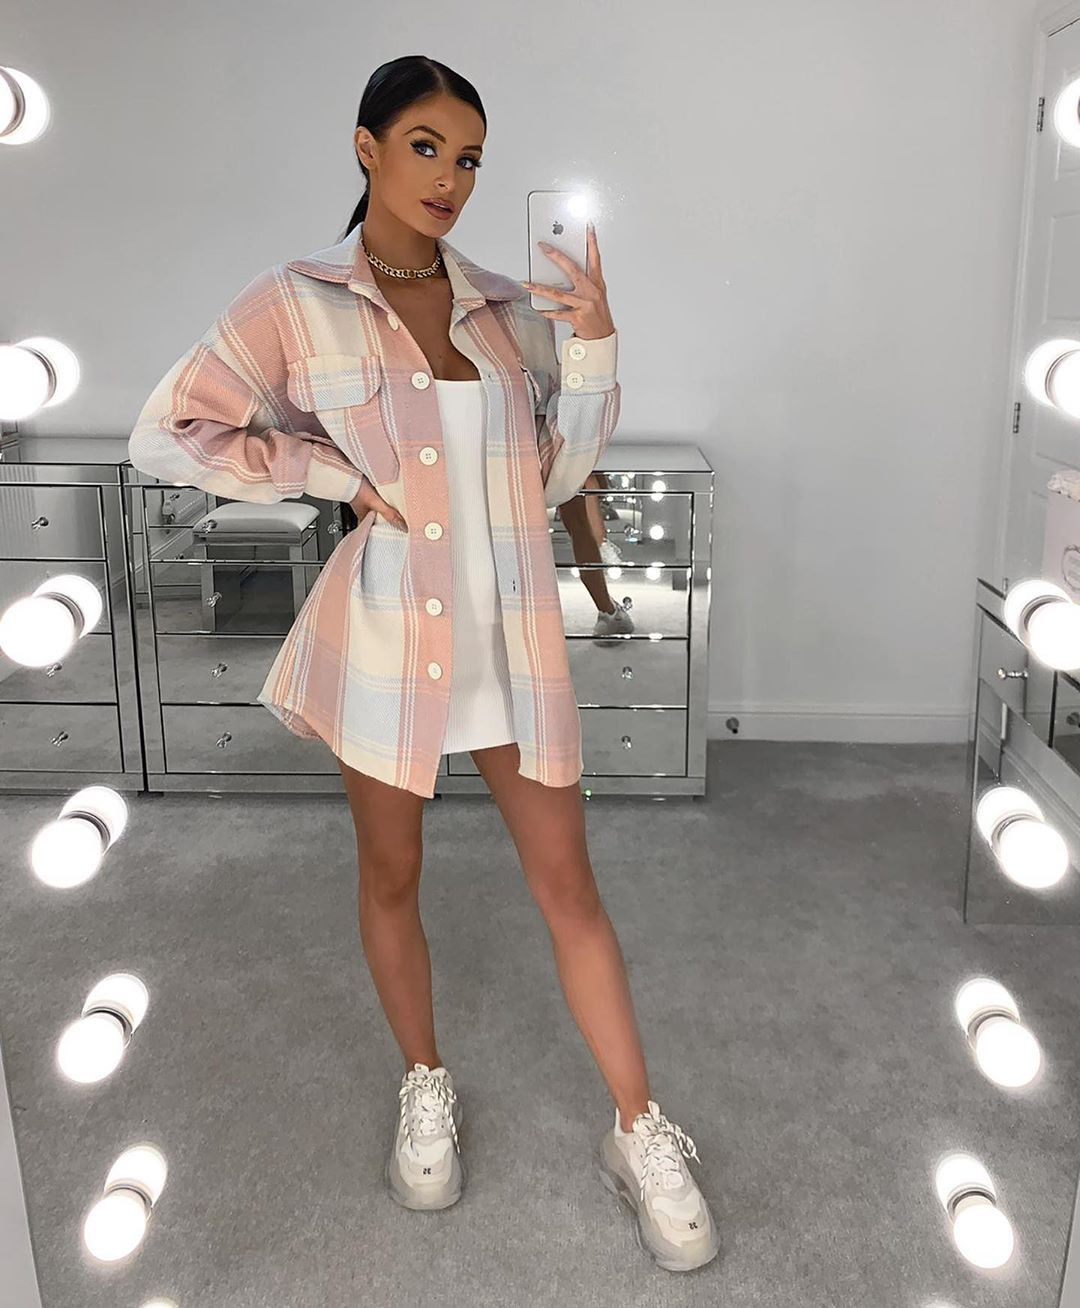 White and pink dress, shoe, fashion tips